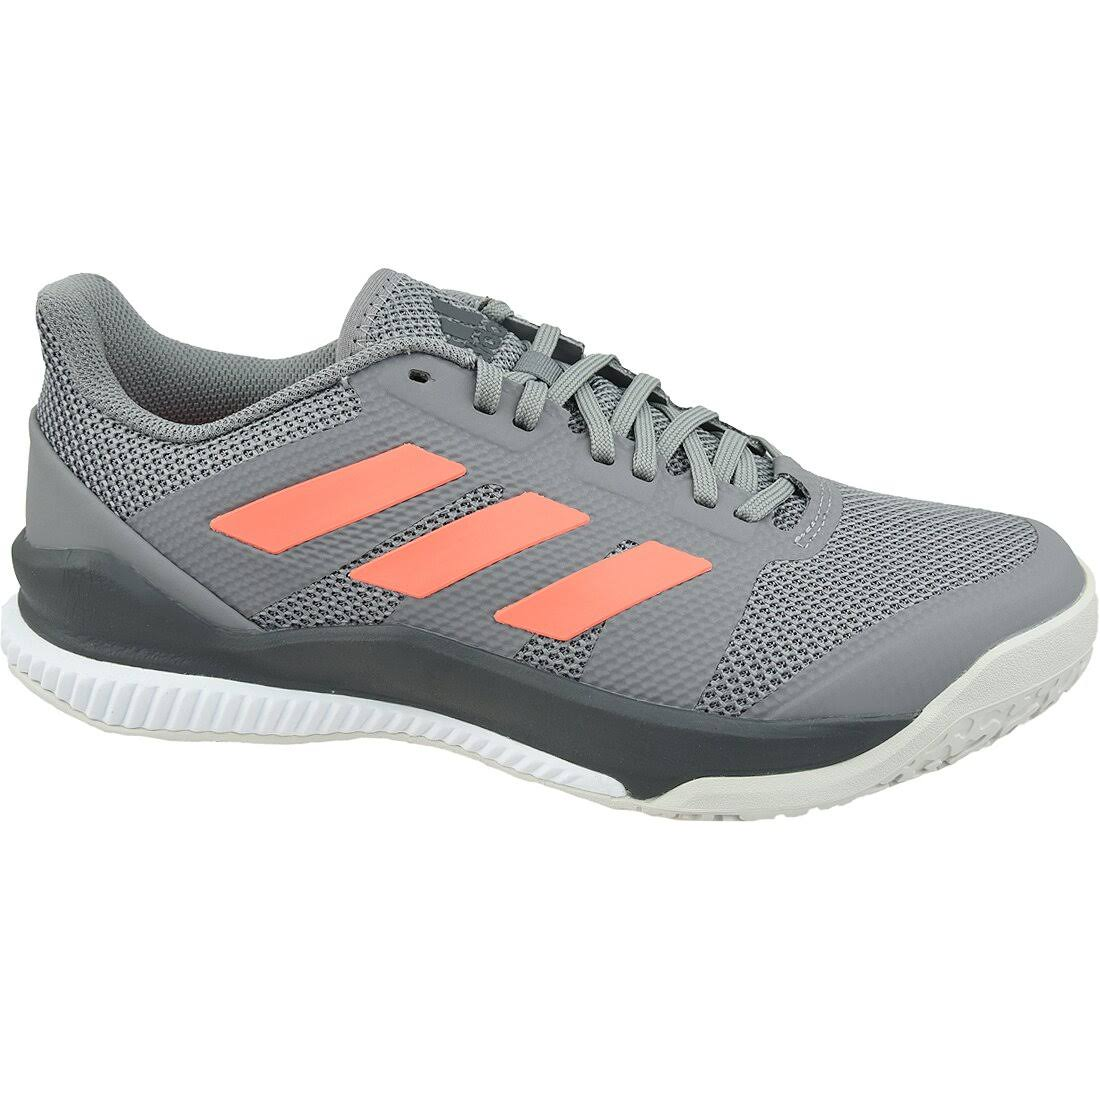 Adidas Stabil Bounce Shoes - Grey - 11.5